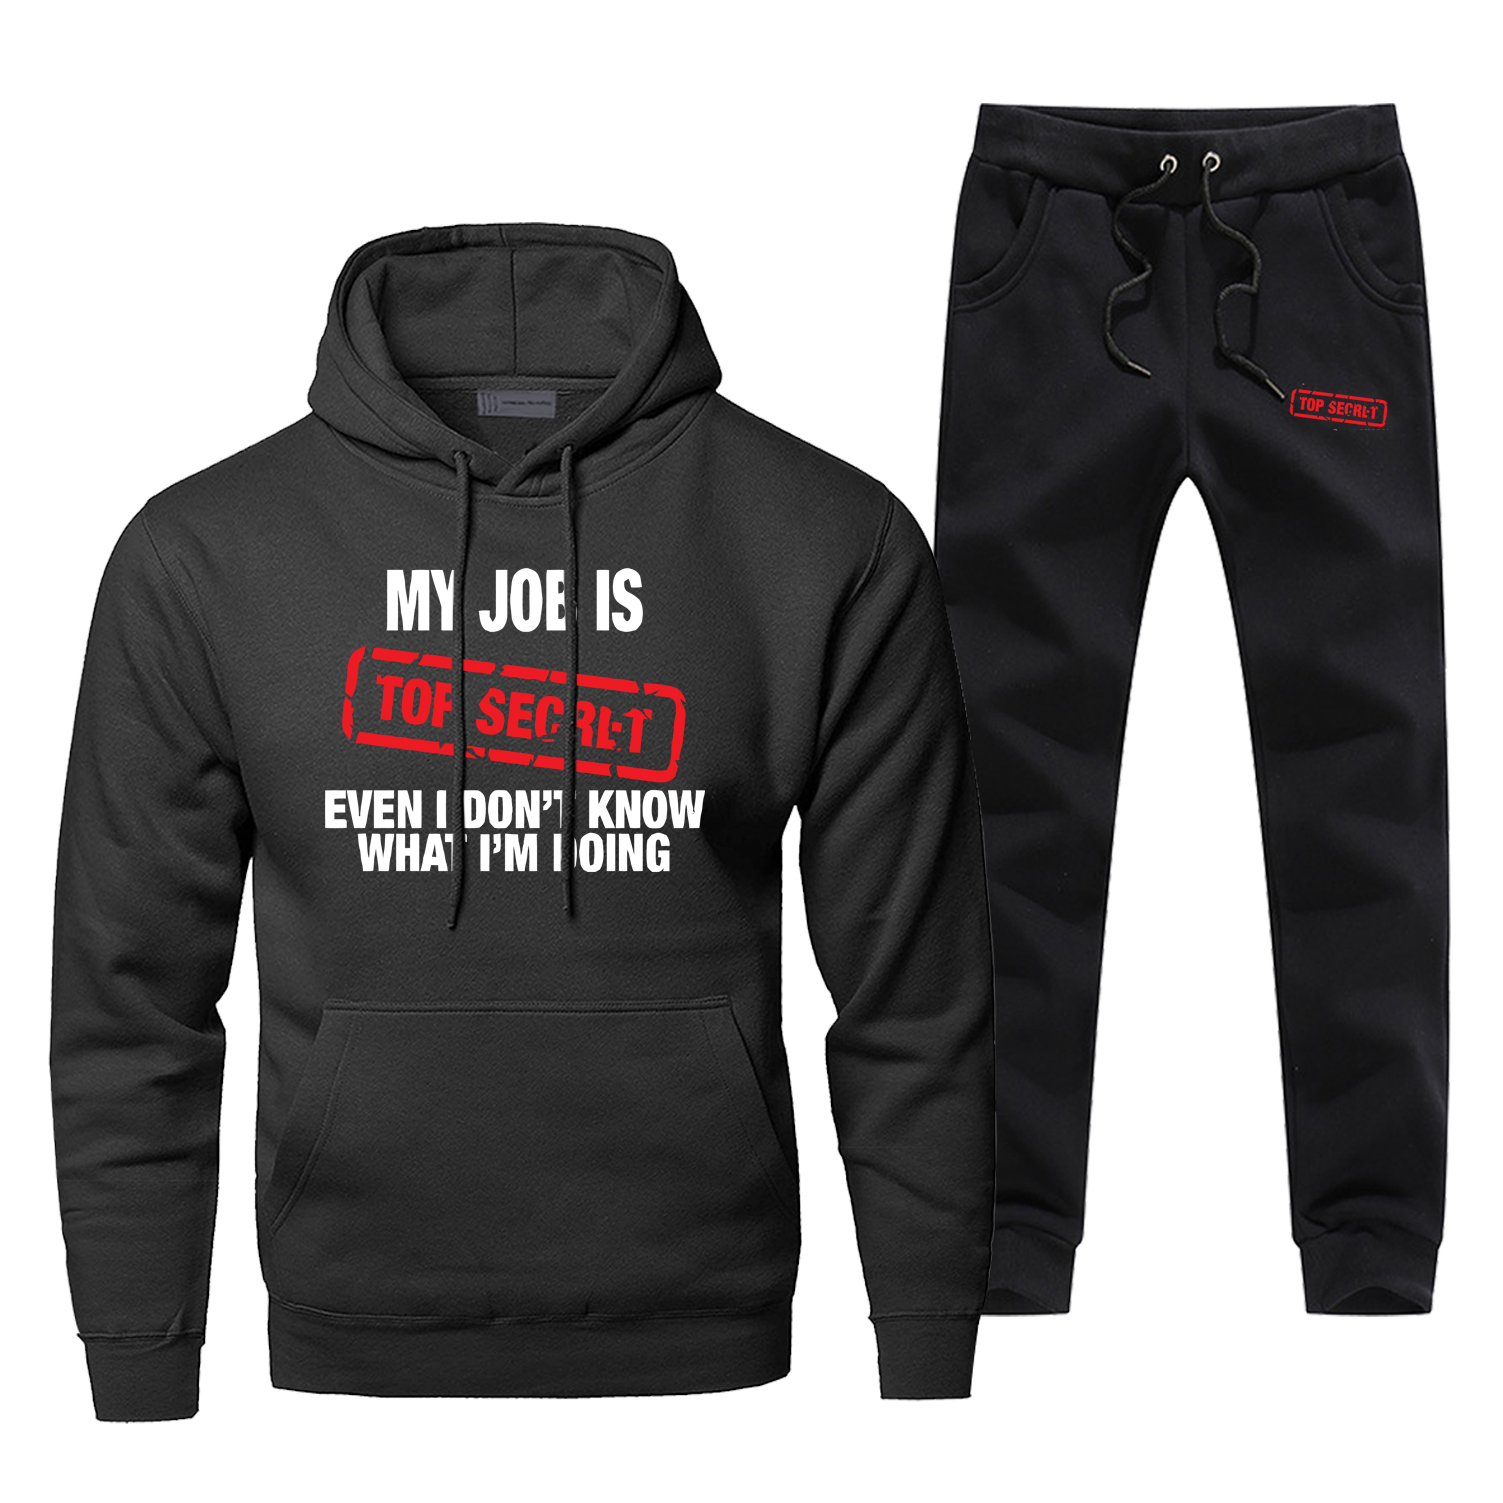 Hoodie Pants Set Men Sweatshirt Male Hoodies Sweatshirts Funny My Job Is Top Secre Mens Sets Two Piece Pant Pullover Hoody Coat